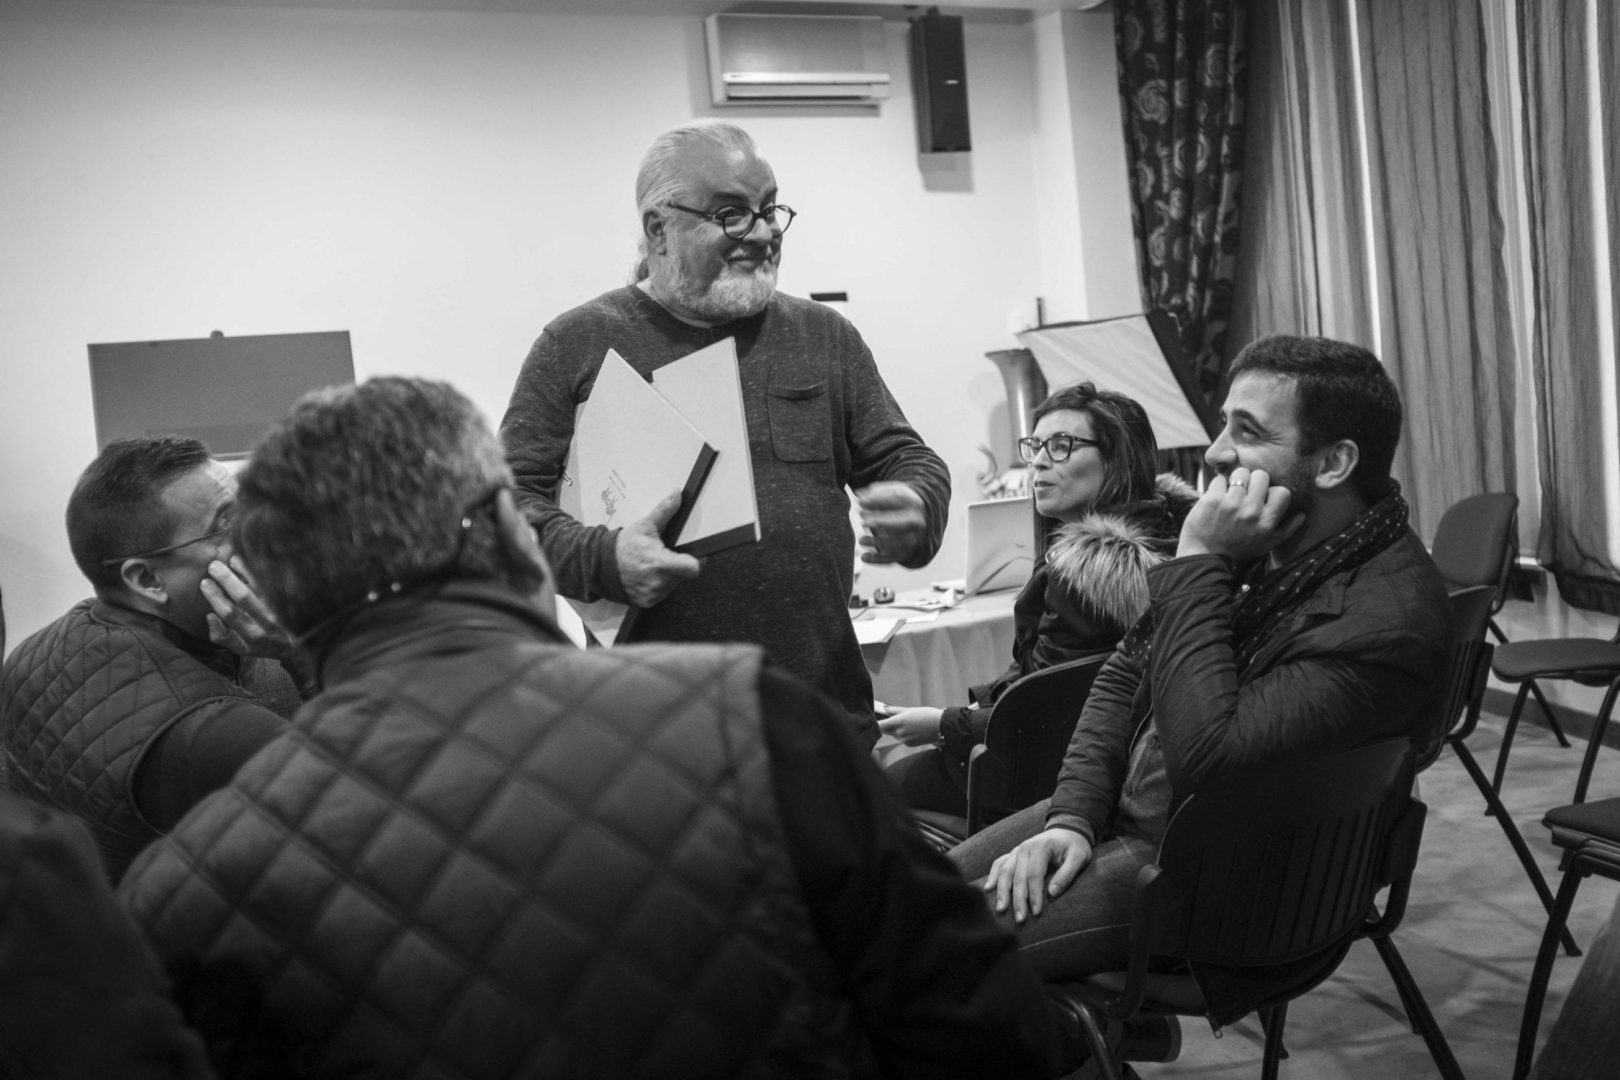 Rui Costa Freire listening to the wise words of the jury panel about his submitted photos.